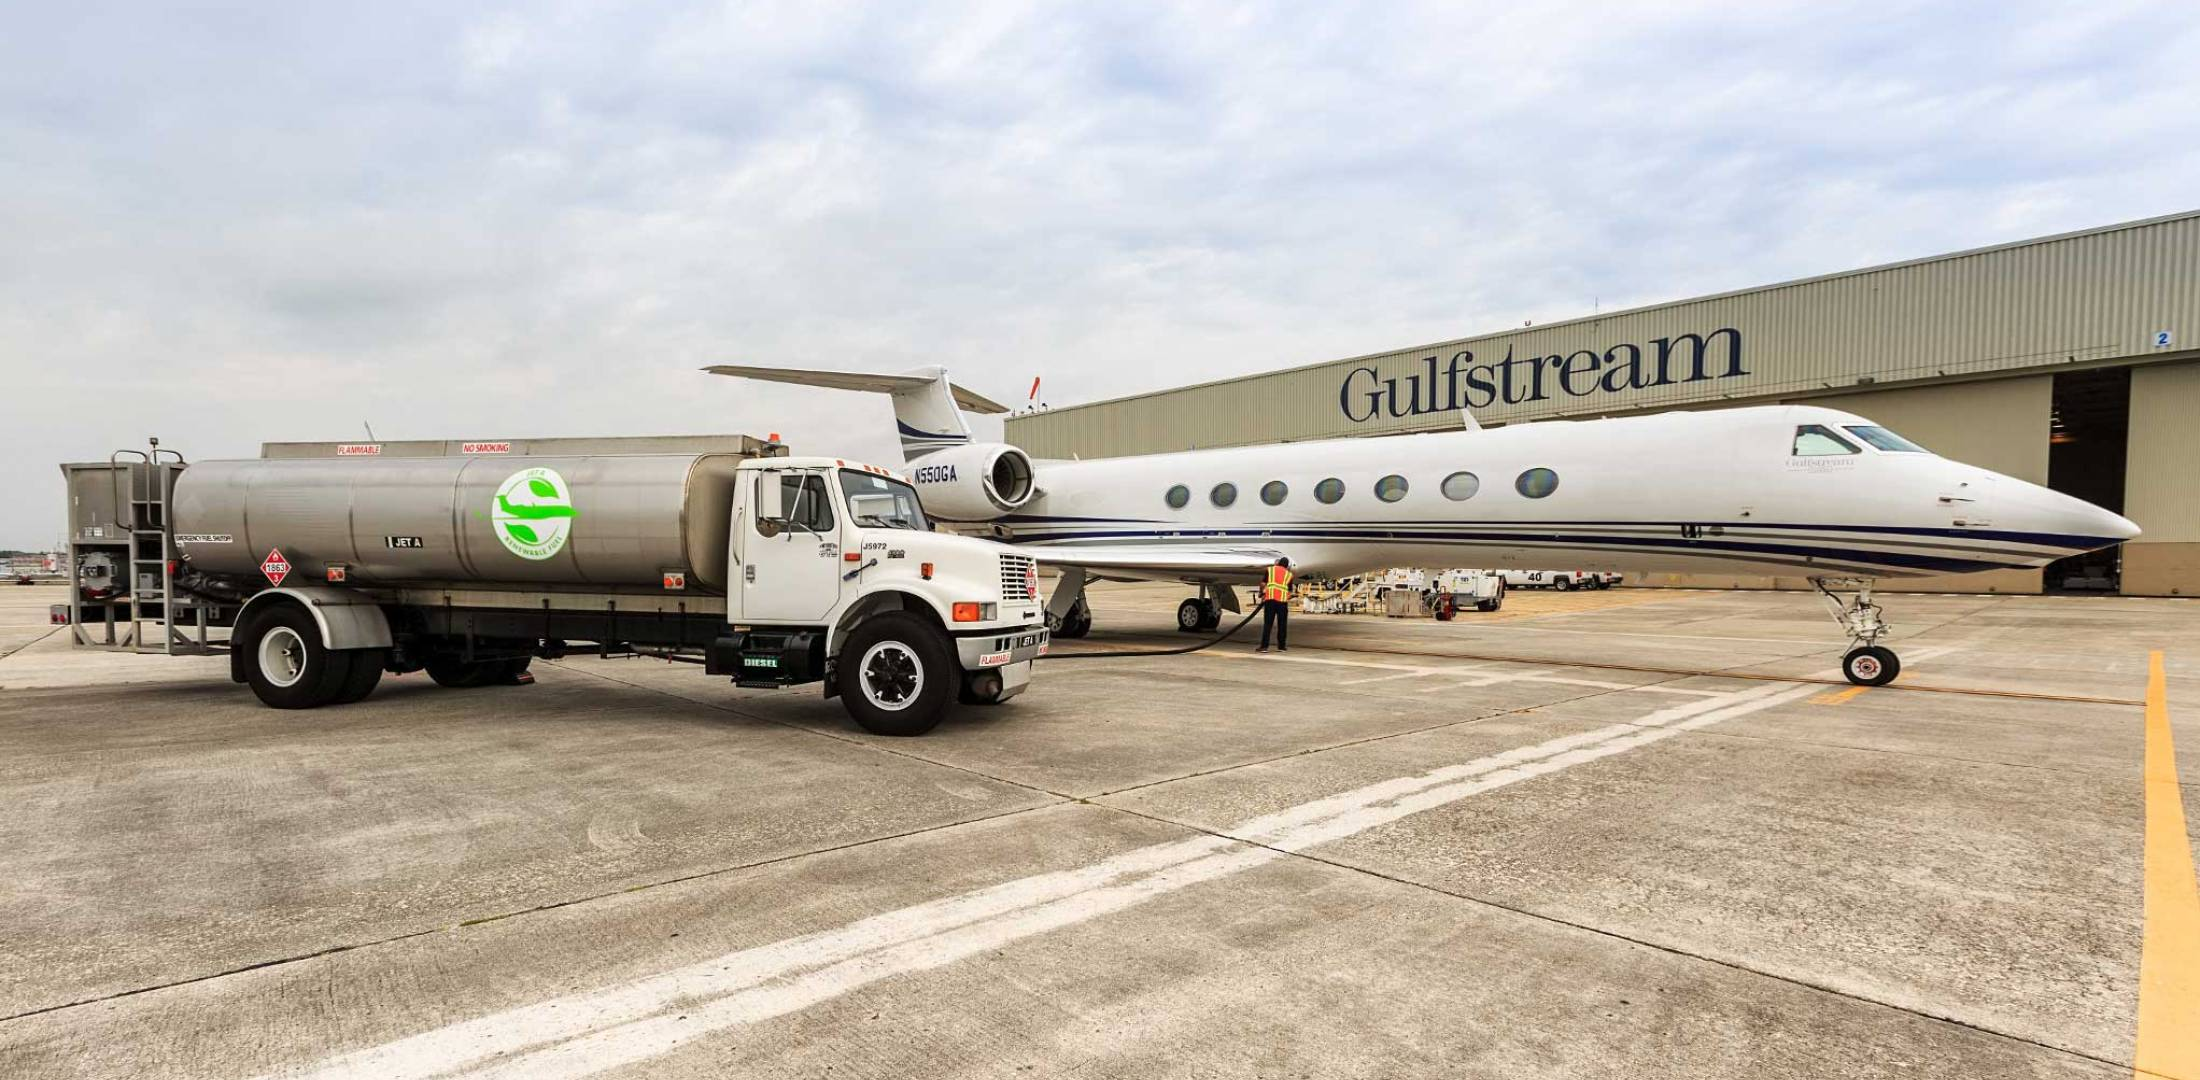 SAF tanker on Gulfstream's ramp